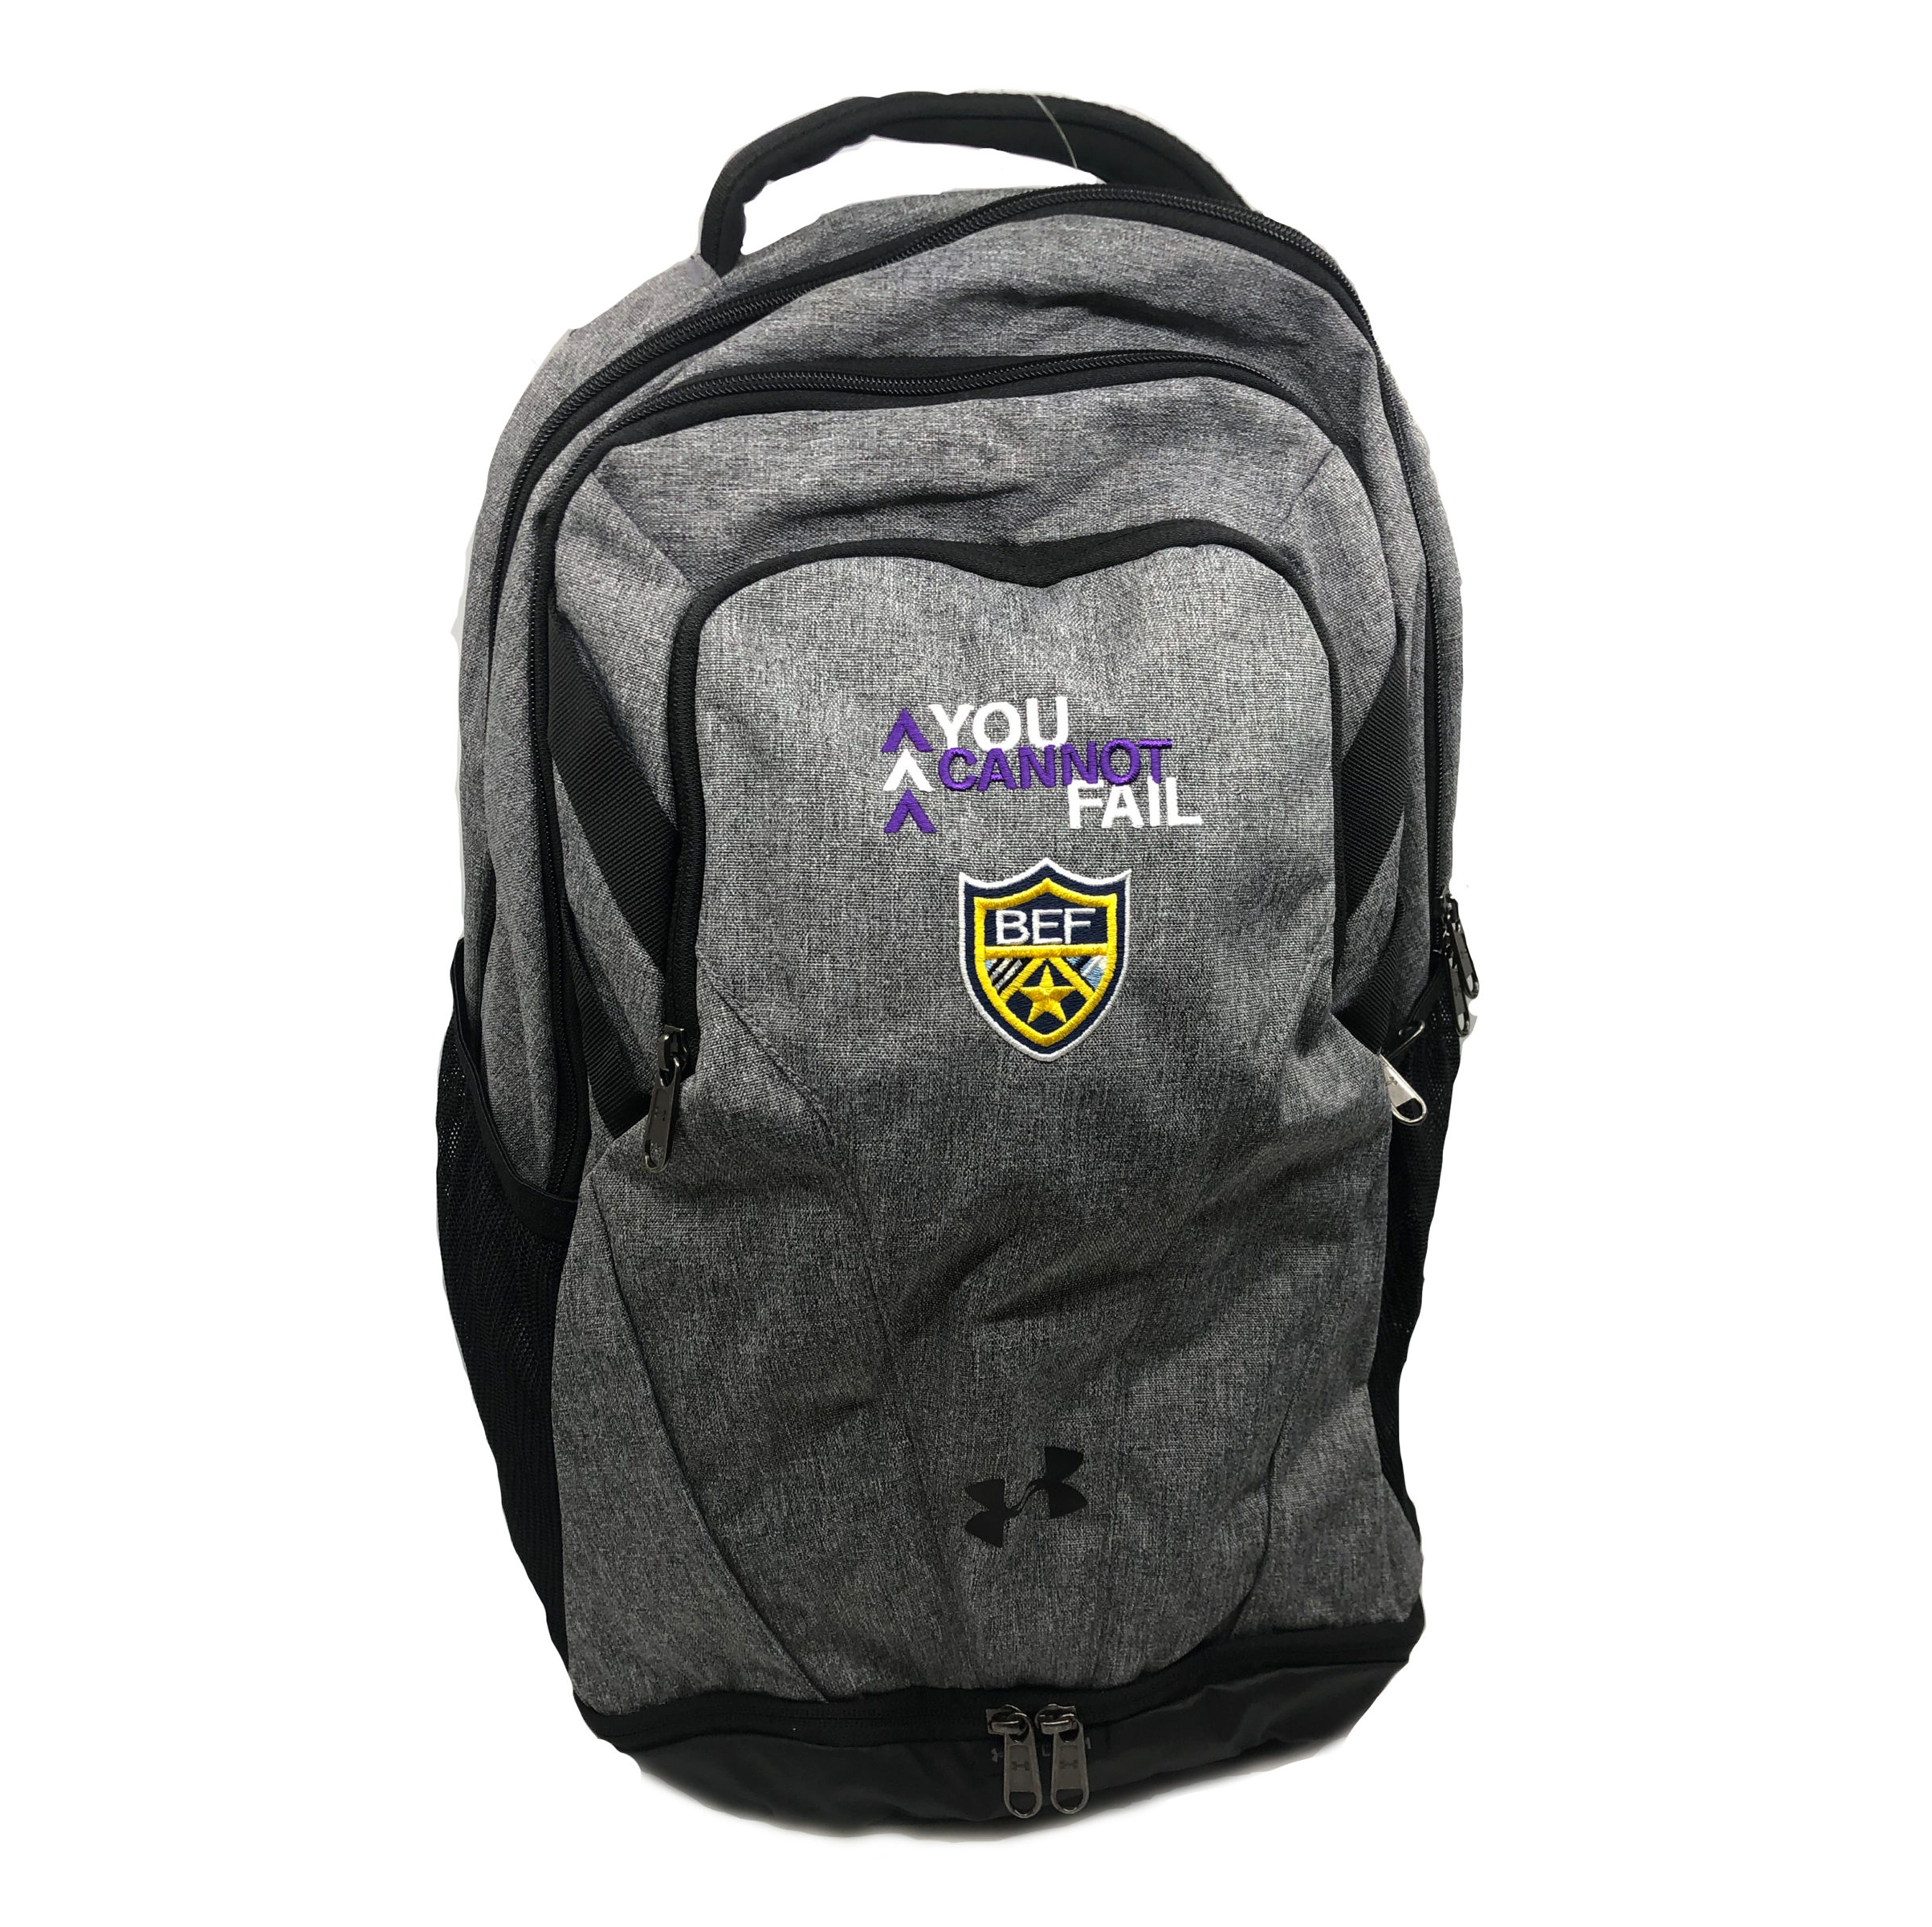 Under Armour - You Cannot Fail Backpack